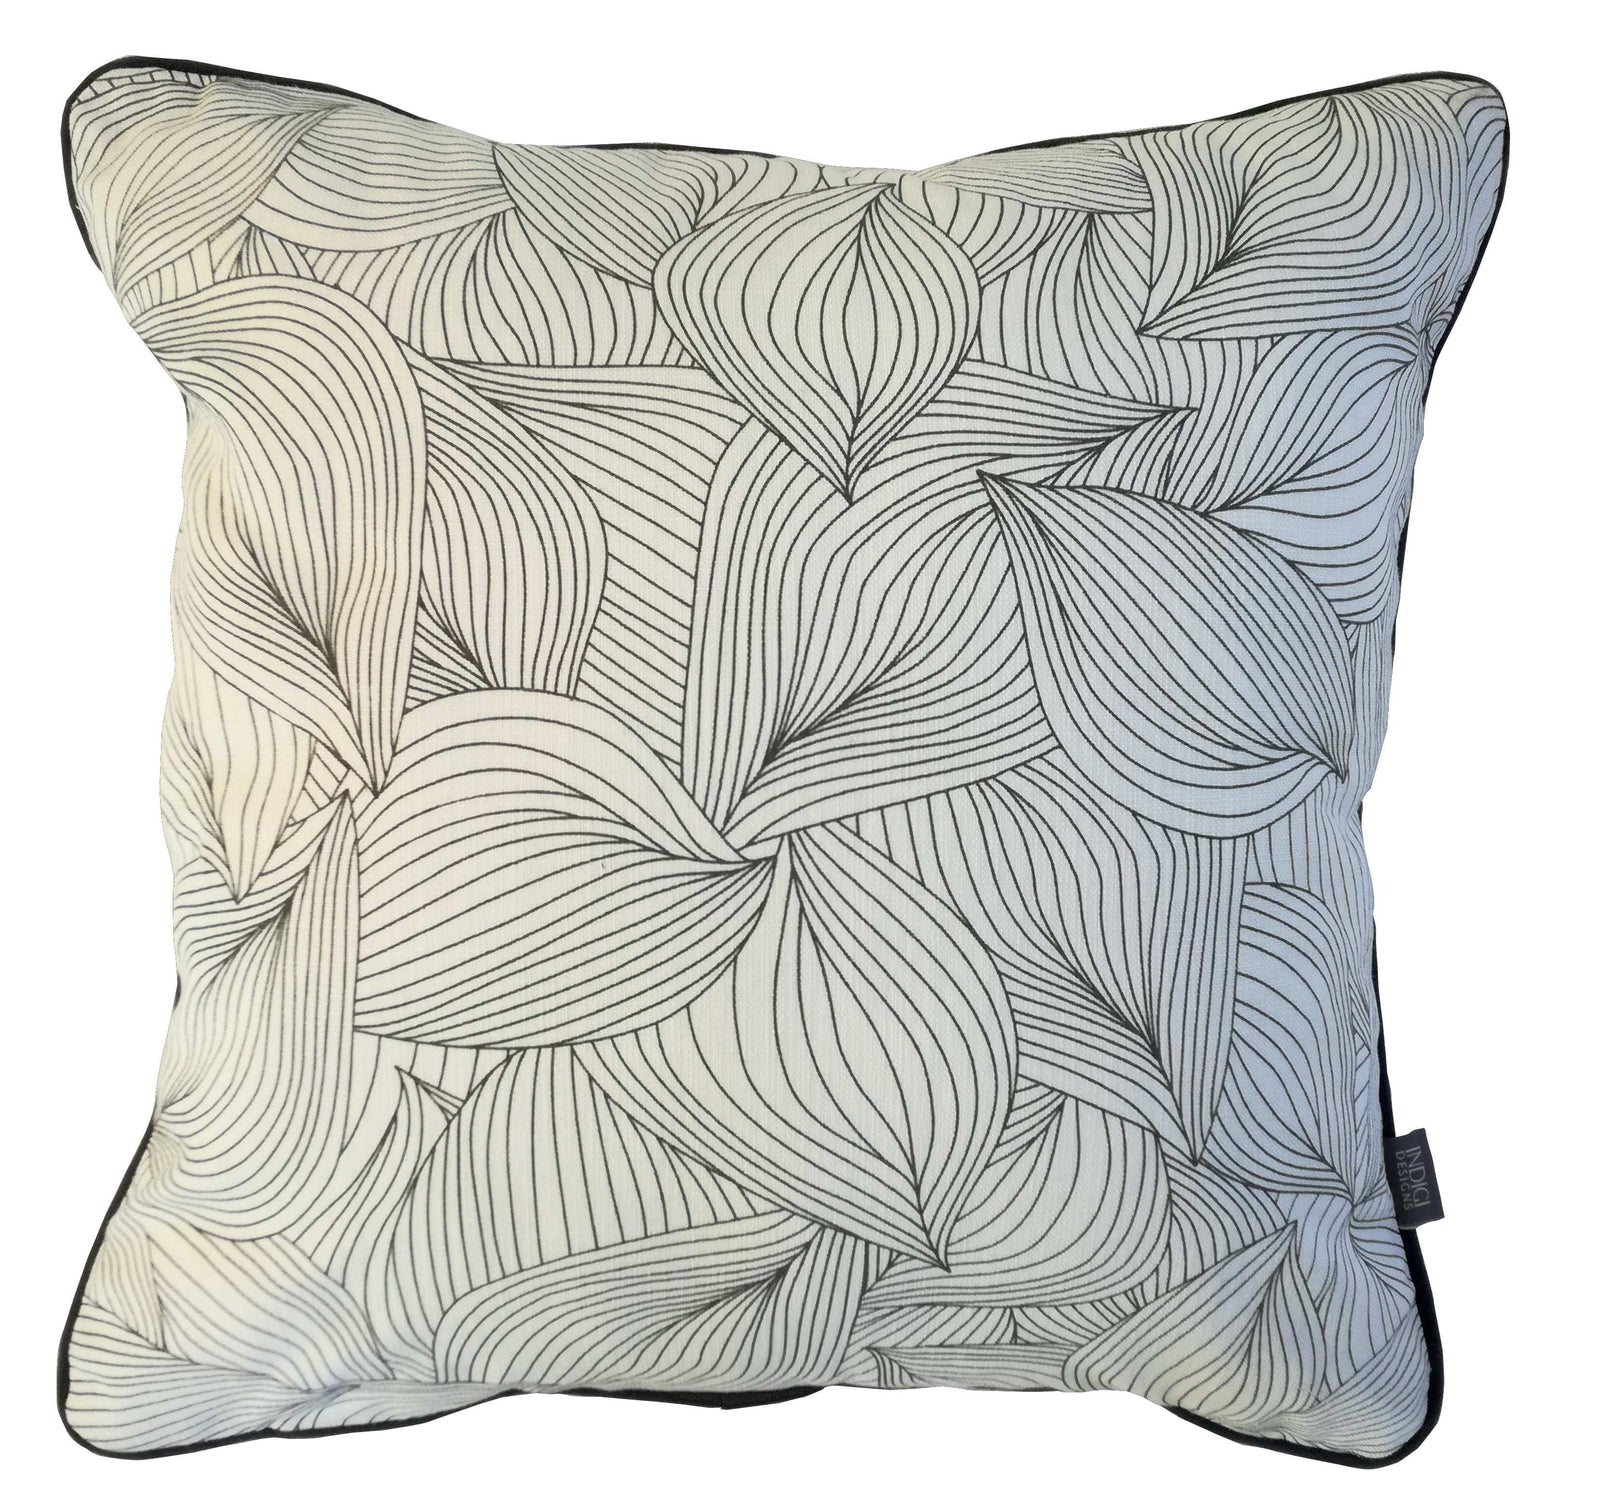 Lilium Charcoal Cushion Cover with Piping